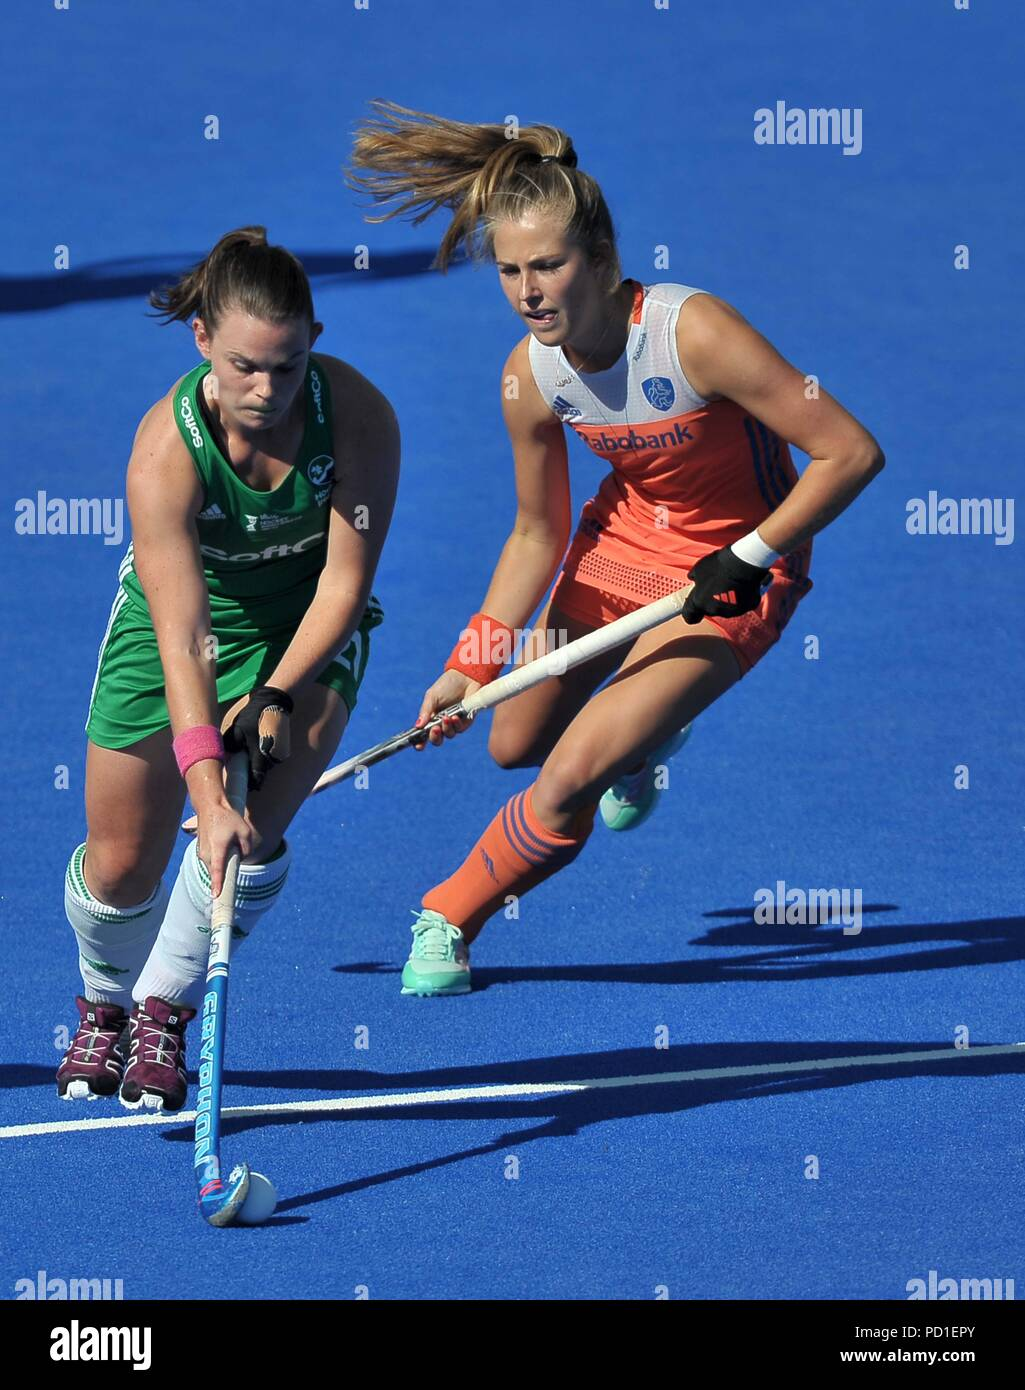 London, UK. 05th Aug, 2018. Lizzie Colvin (IRL) goes past Xan De Waard (NED). Holland V Ireland. Match 36. Final. Gold medal match. Womens Hockey World Cup 2018. Lee Valley hockey centre. Queen Elizabeth Olympic Park. Stratford. London. UK. 05/08/2018. Credit: Sport In Pictures/Alamy Live News - Stock Image